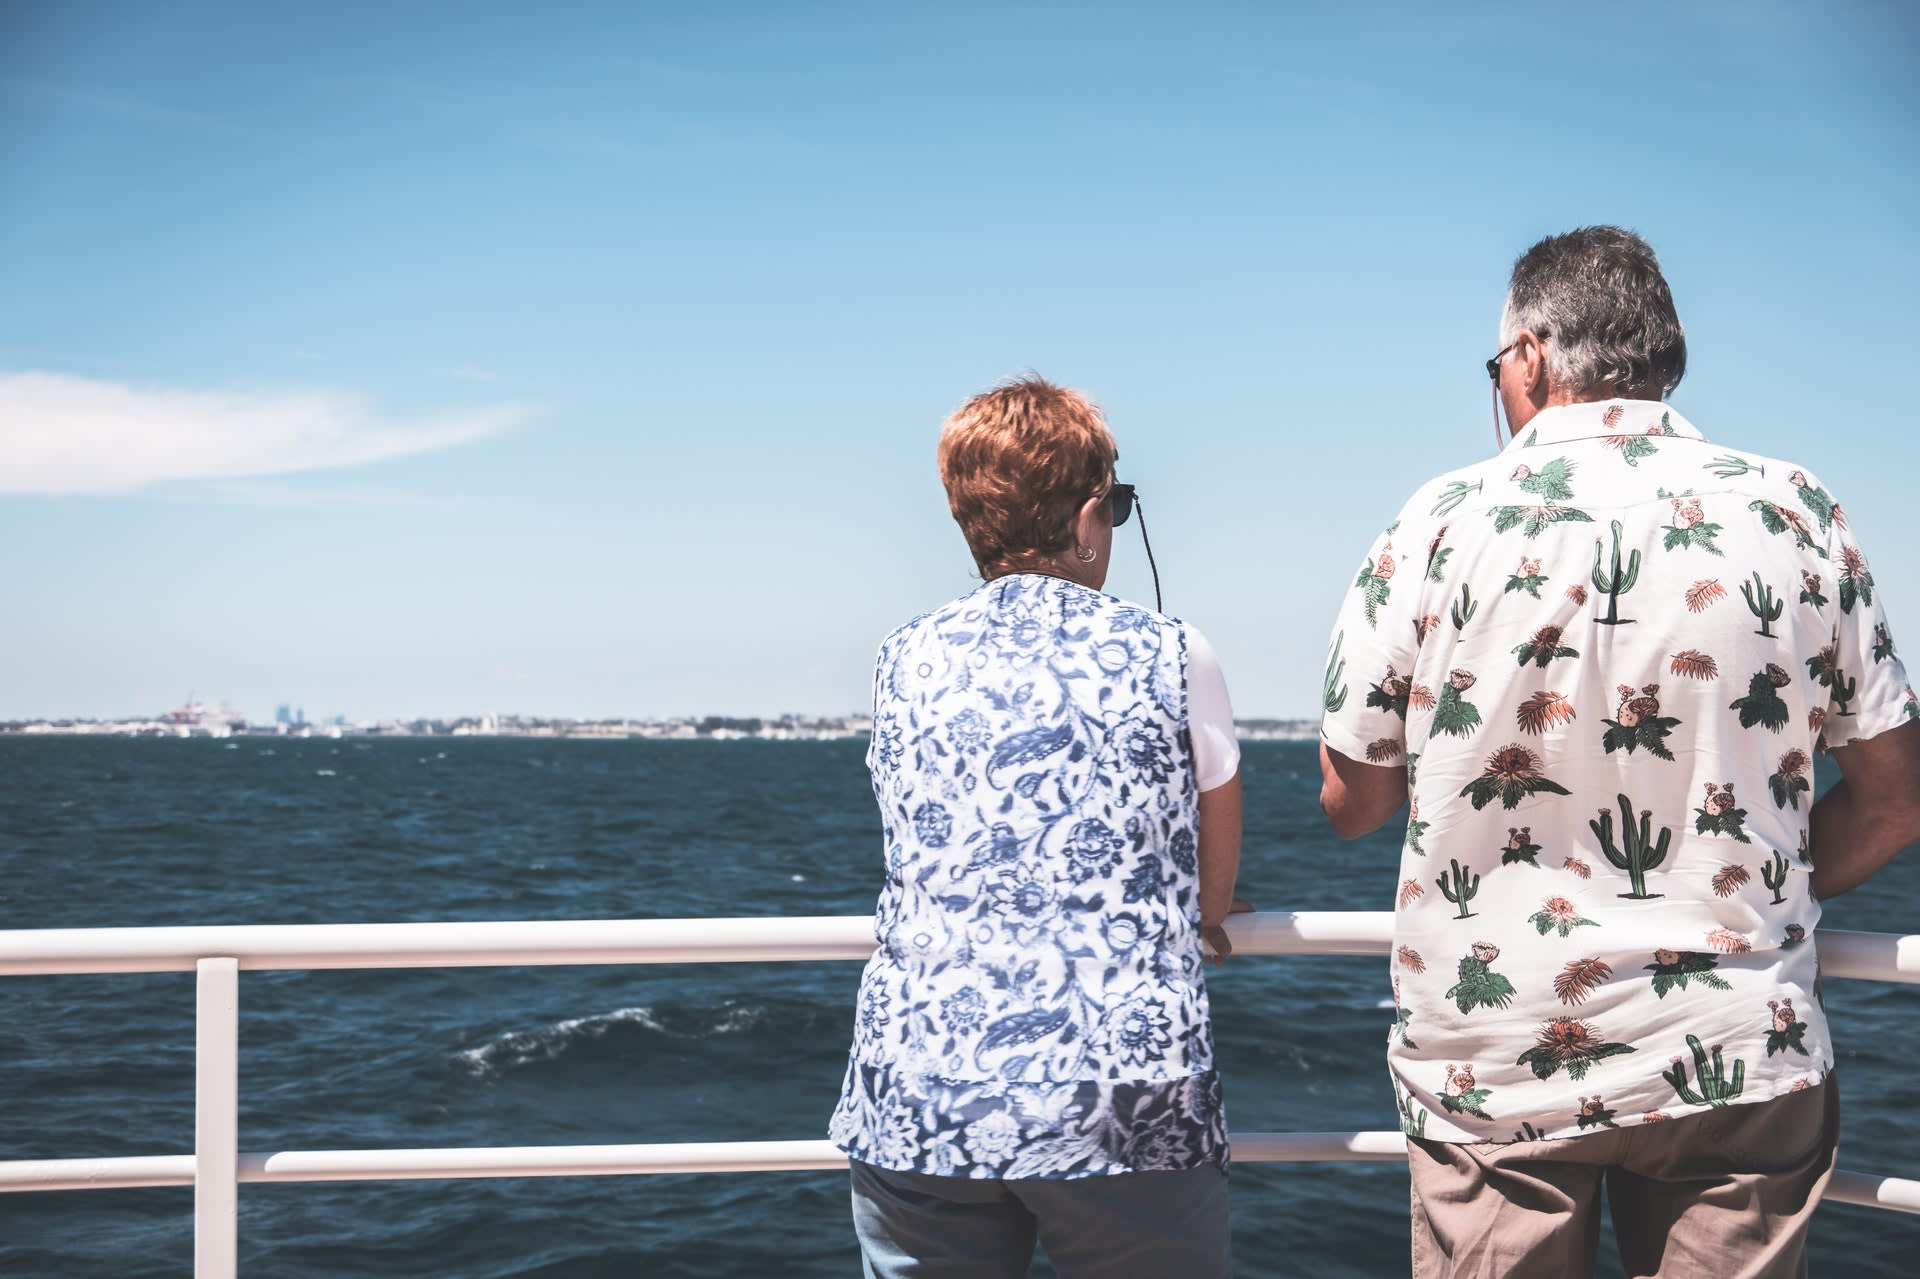 Baby boomers must consider long-term care needs